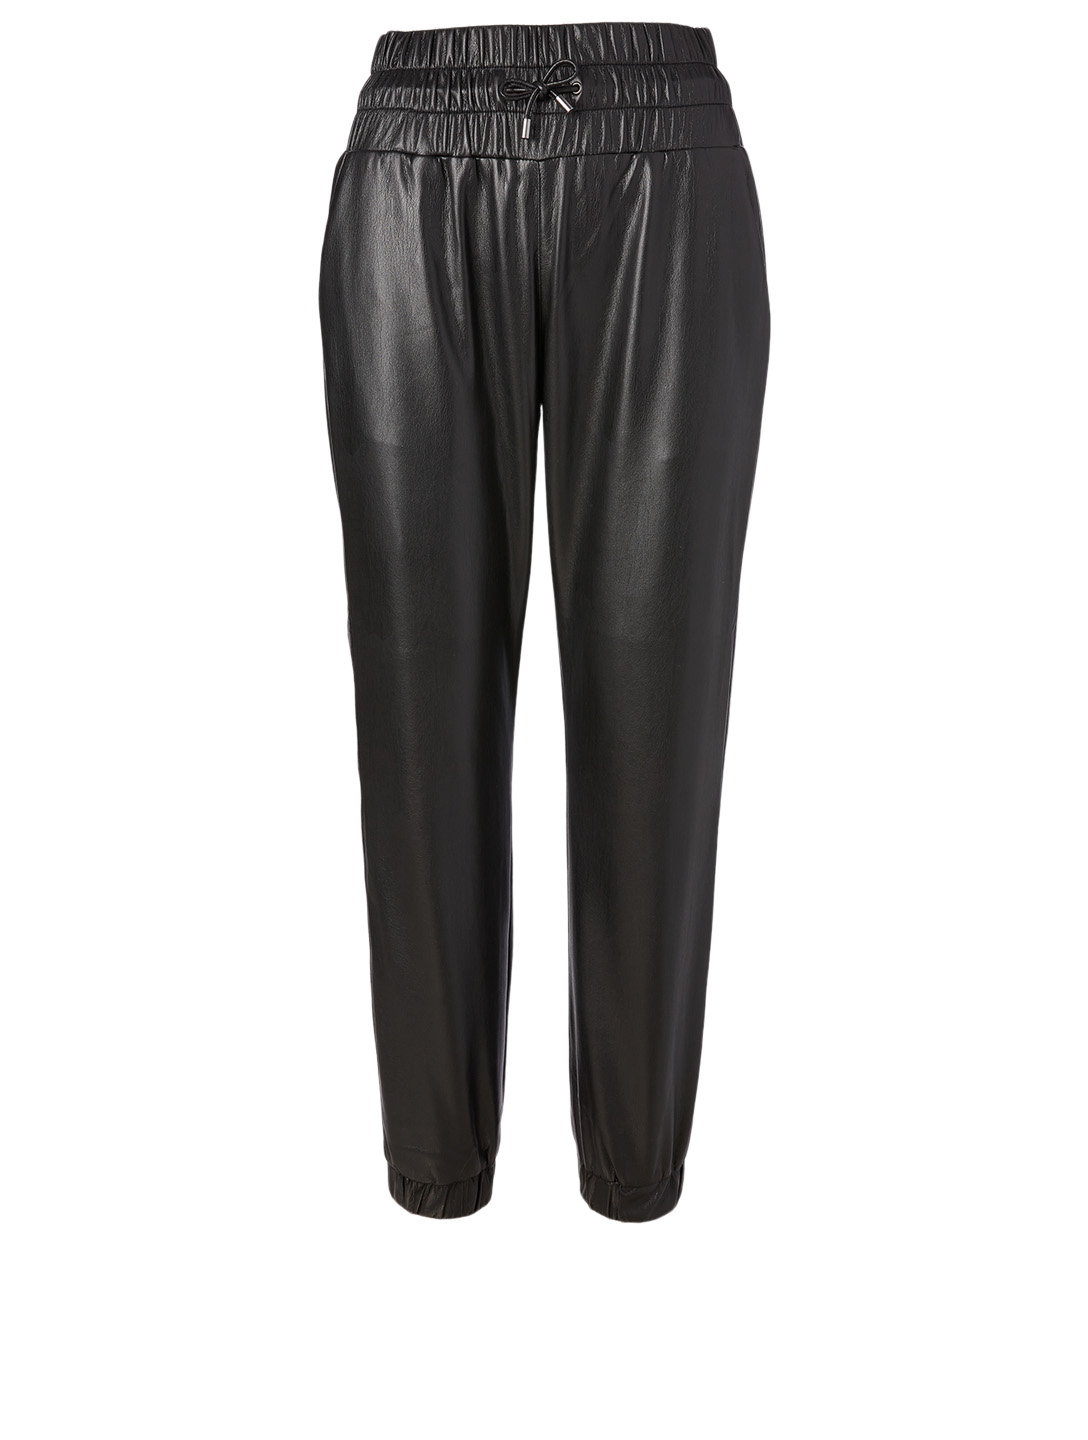 JOIE Wadley Faux Leather Pants Women's Black